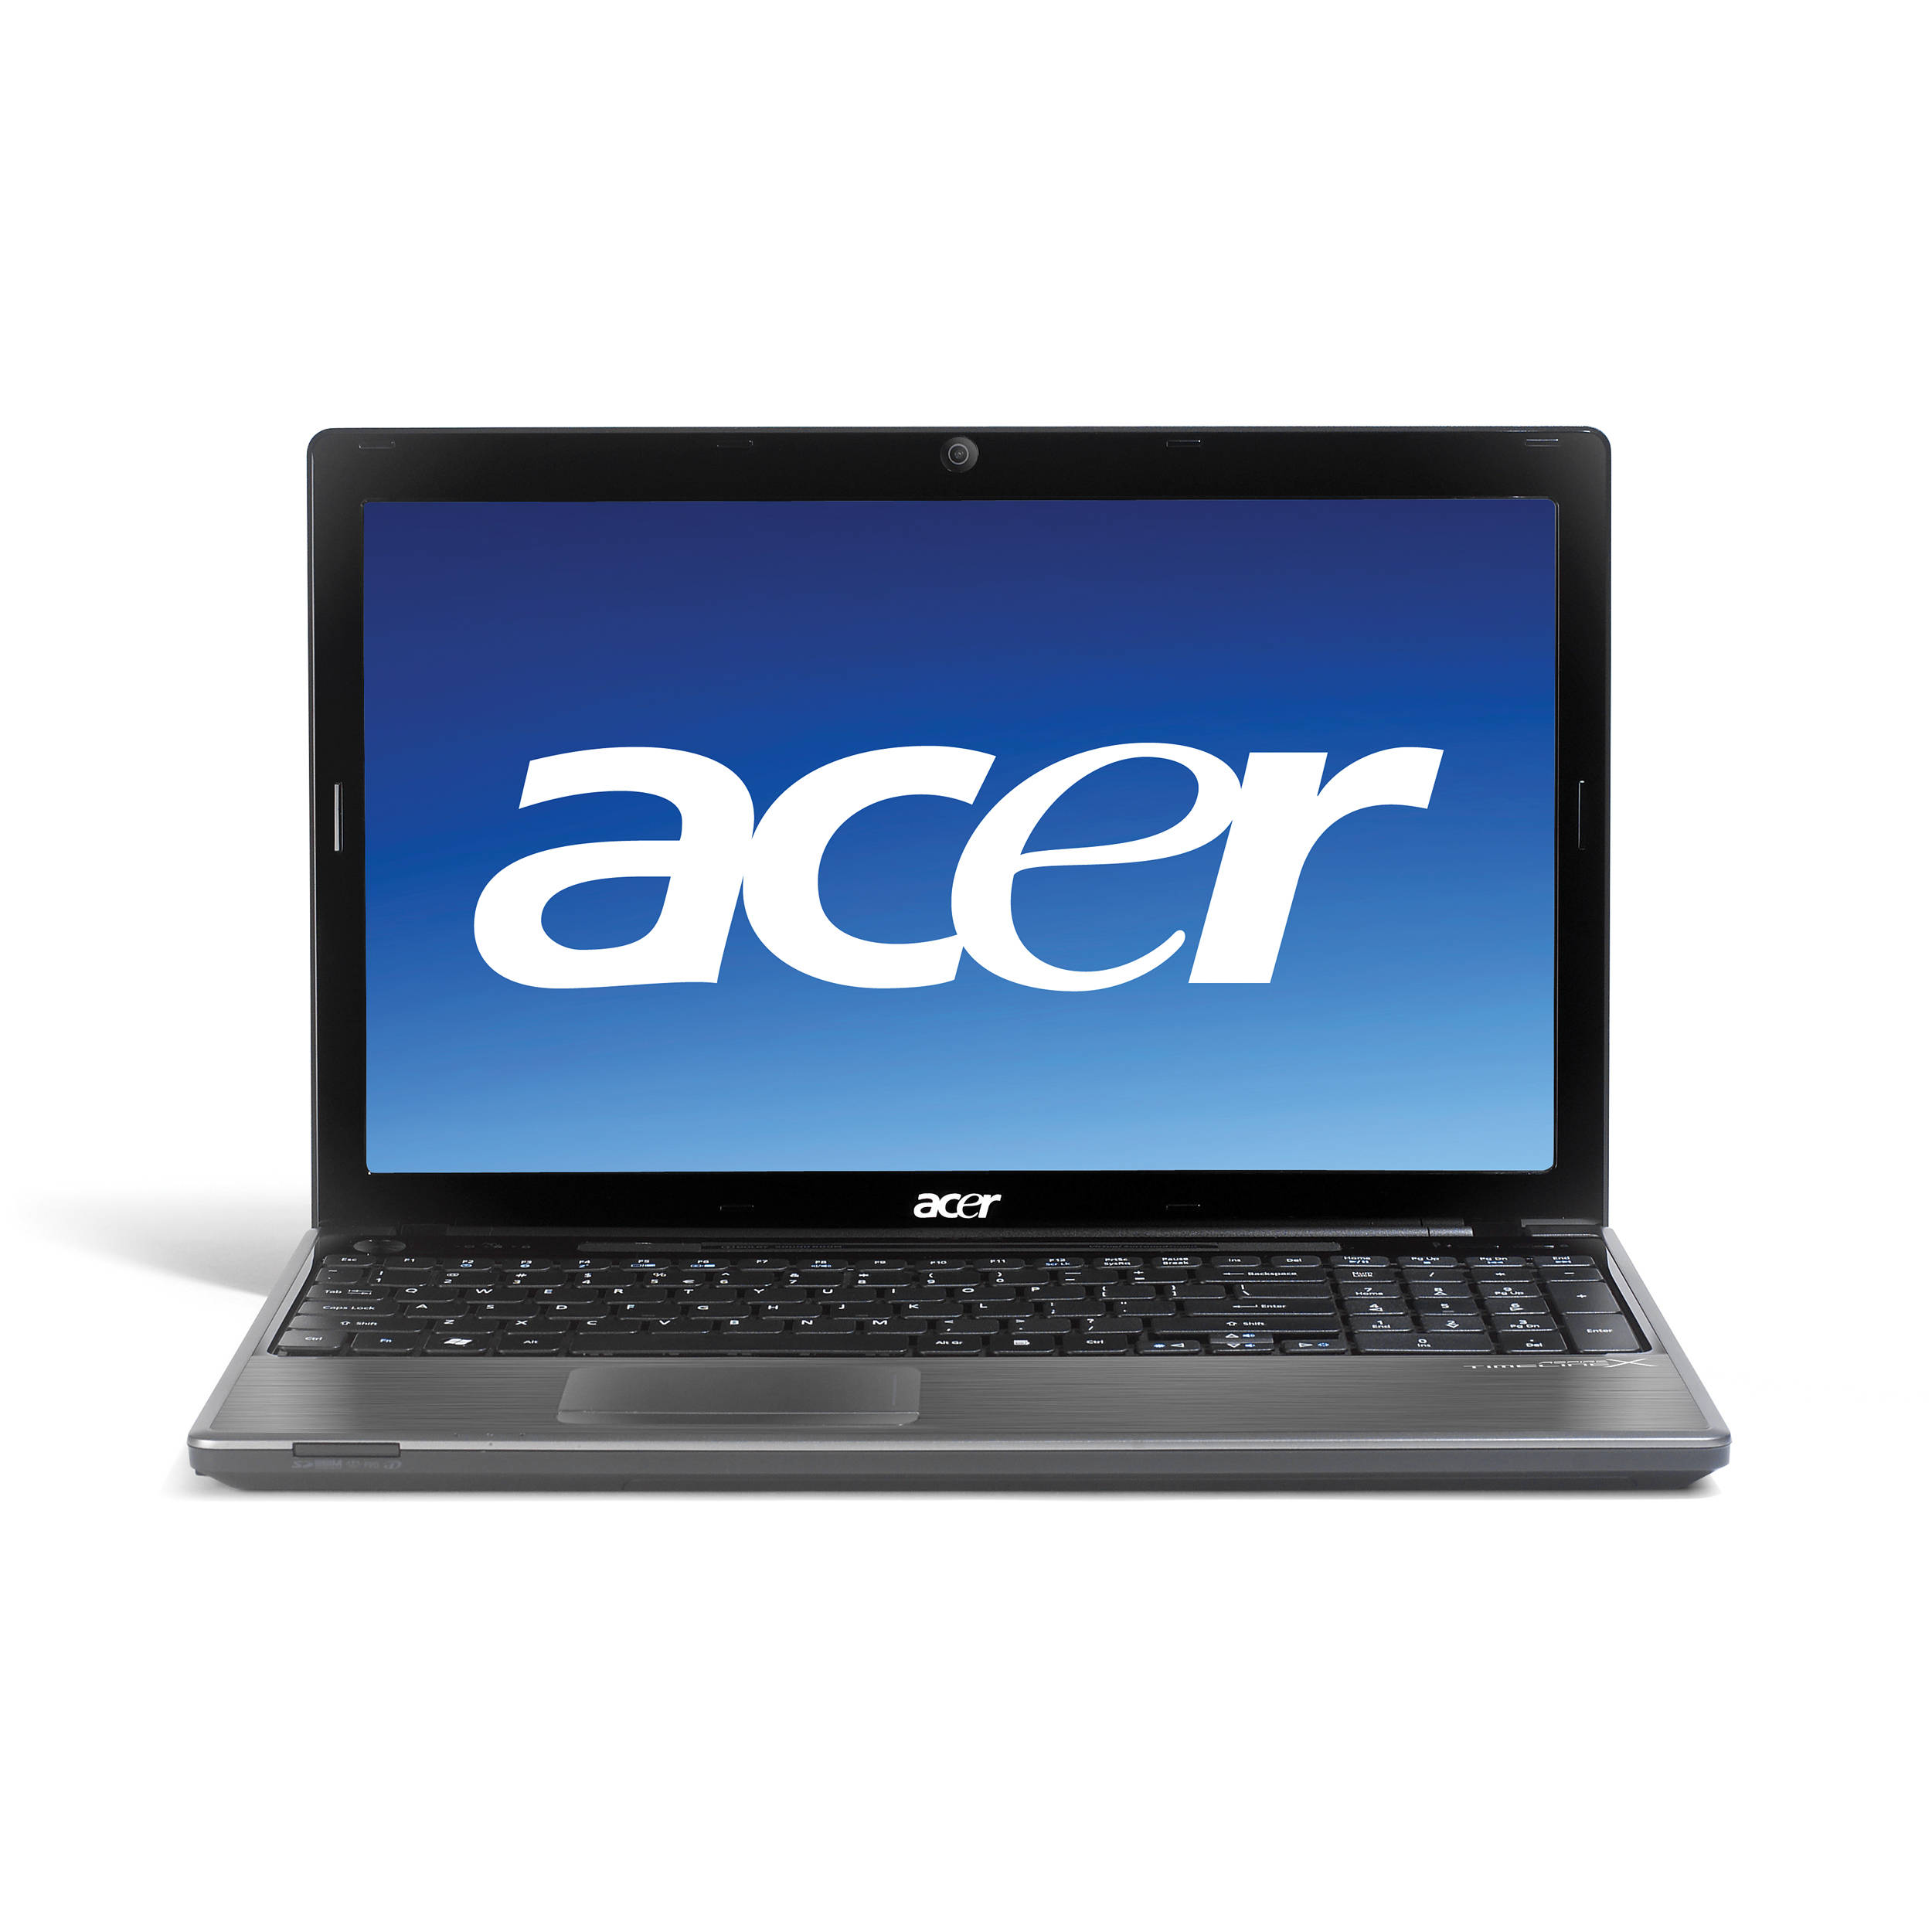 ACER ASPIRE AS5820T NOTEBOOK INTEL VGA WINDOWS XP DRIVER